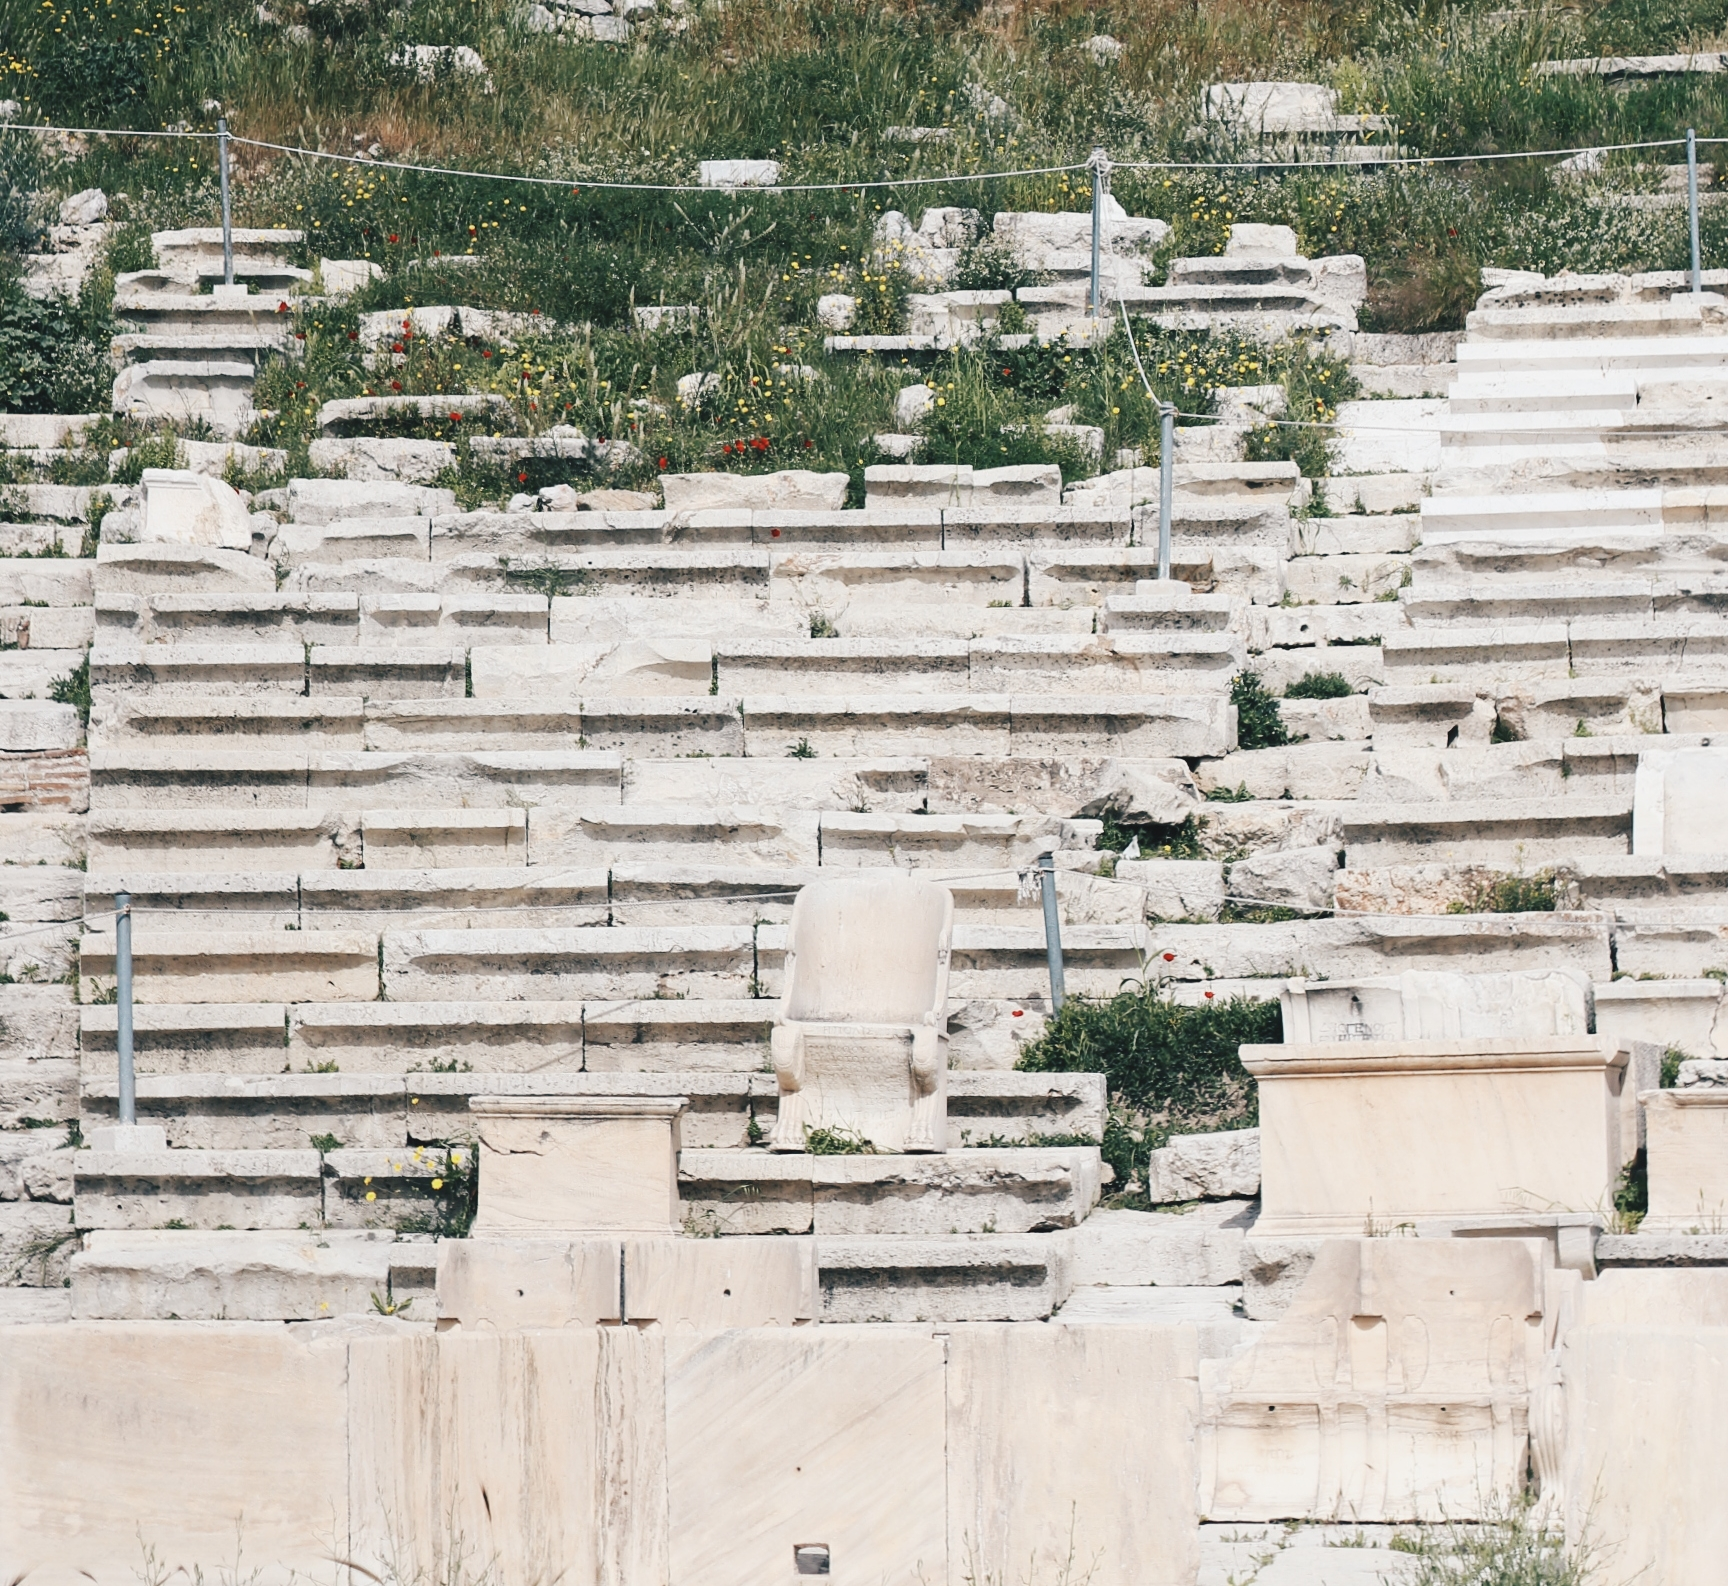 """Phang Zi Xin  """"VIP Seats At Theatre of Dionysus"""" , 22 March 2018. A picture of the VIP seats at the Theatre of Dionysus. At the center of the picture, there is a marble chair with back support, and the rows of seats towards the background there are foliage growing."""